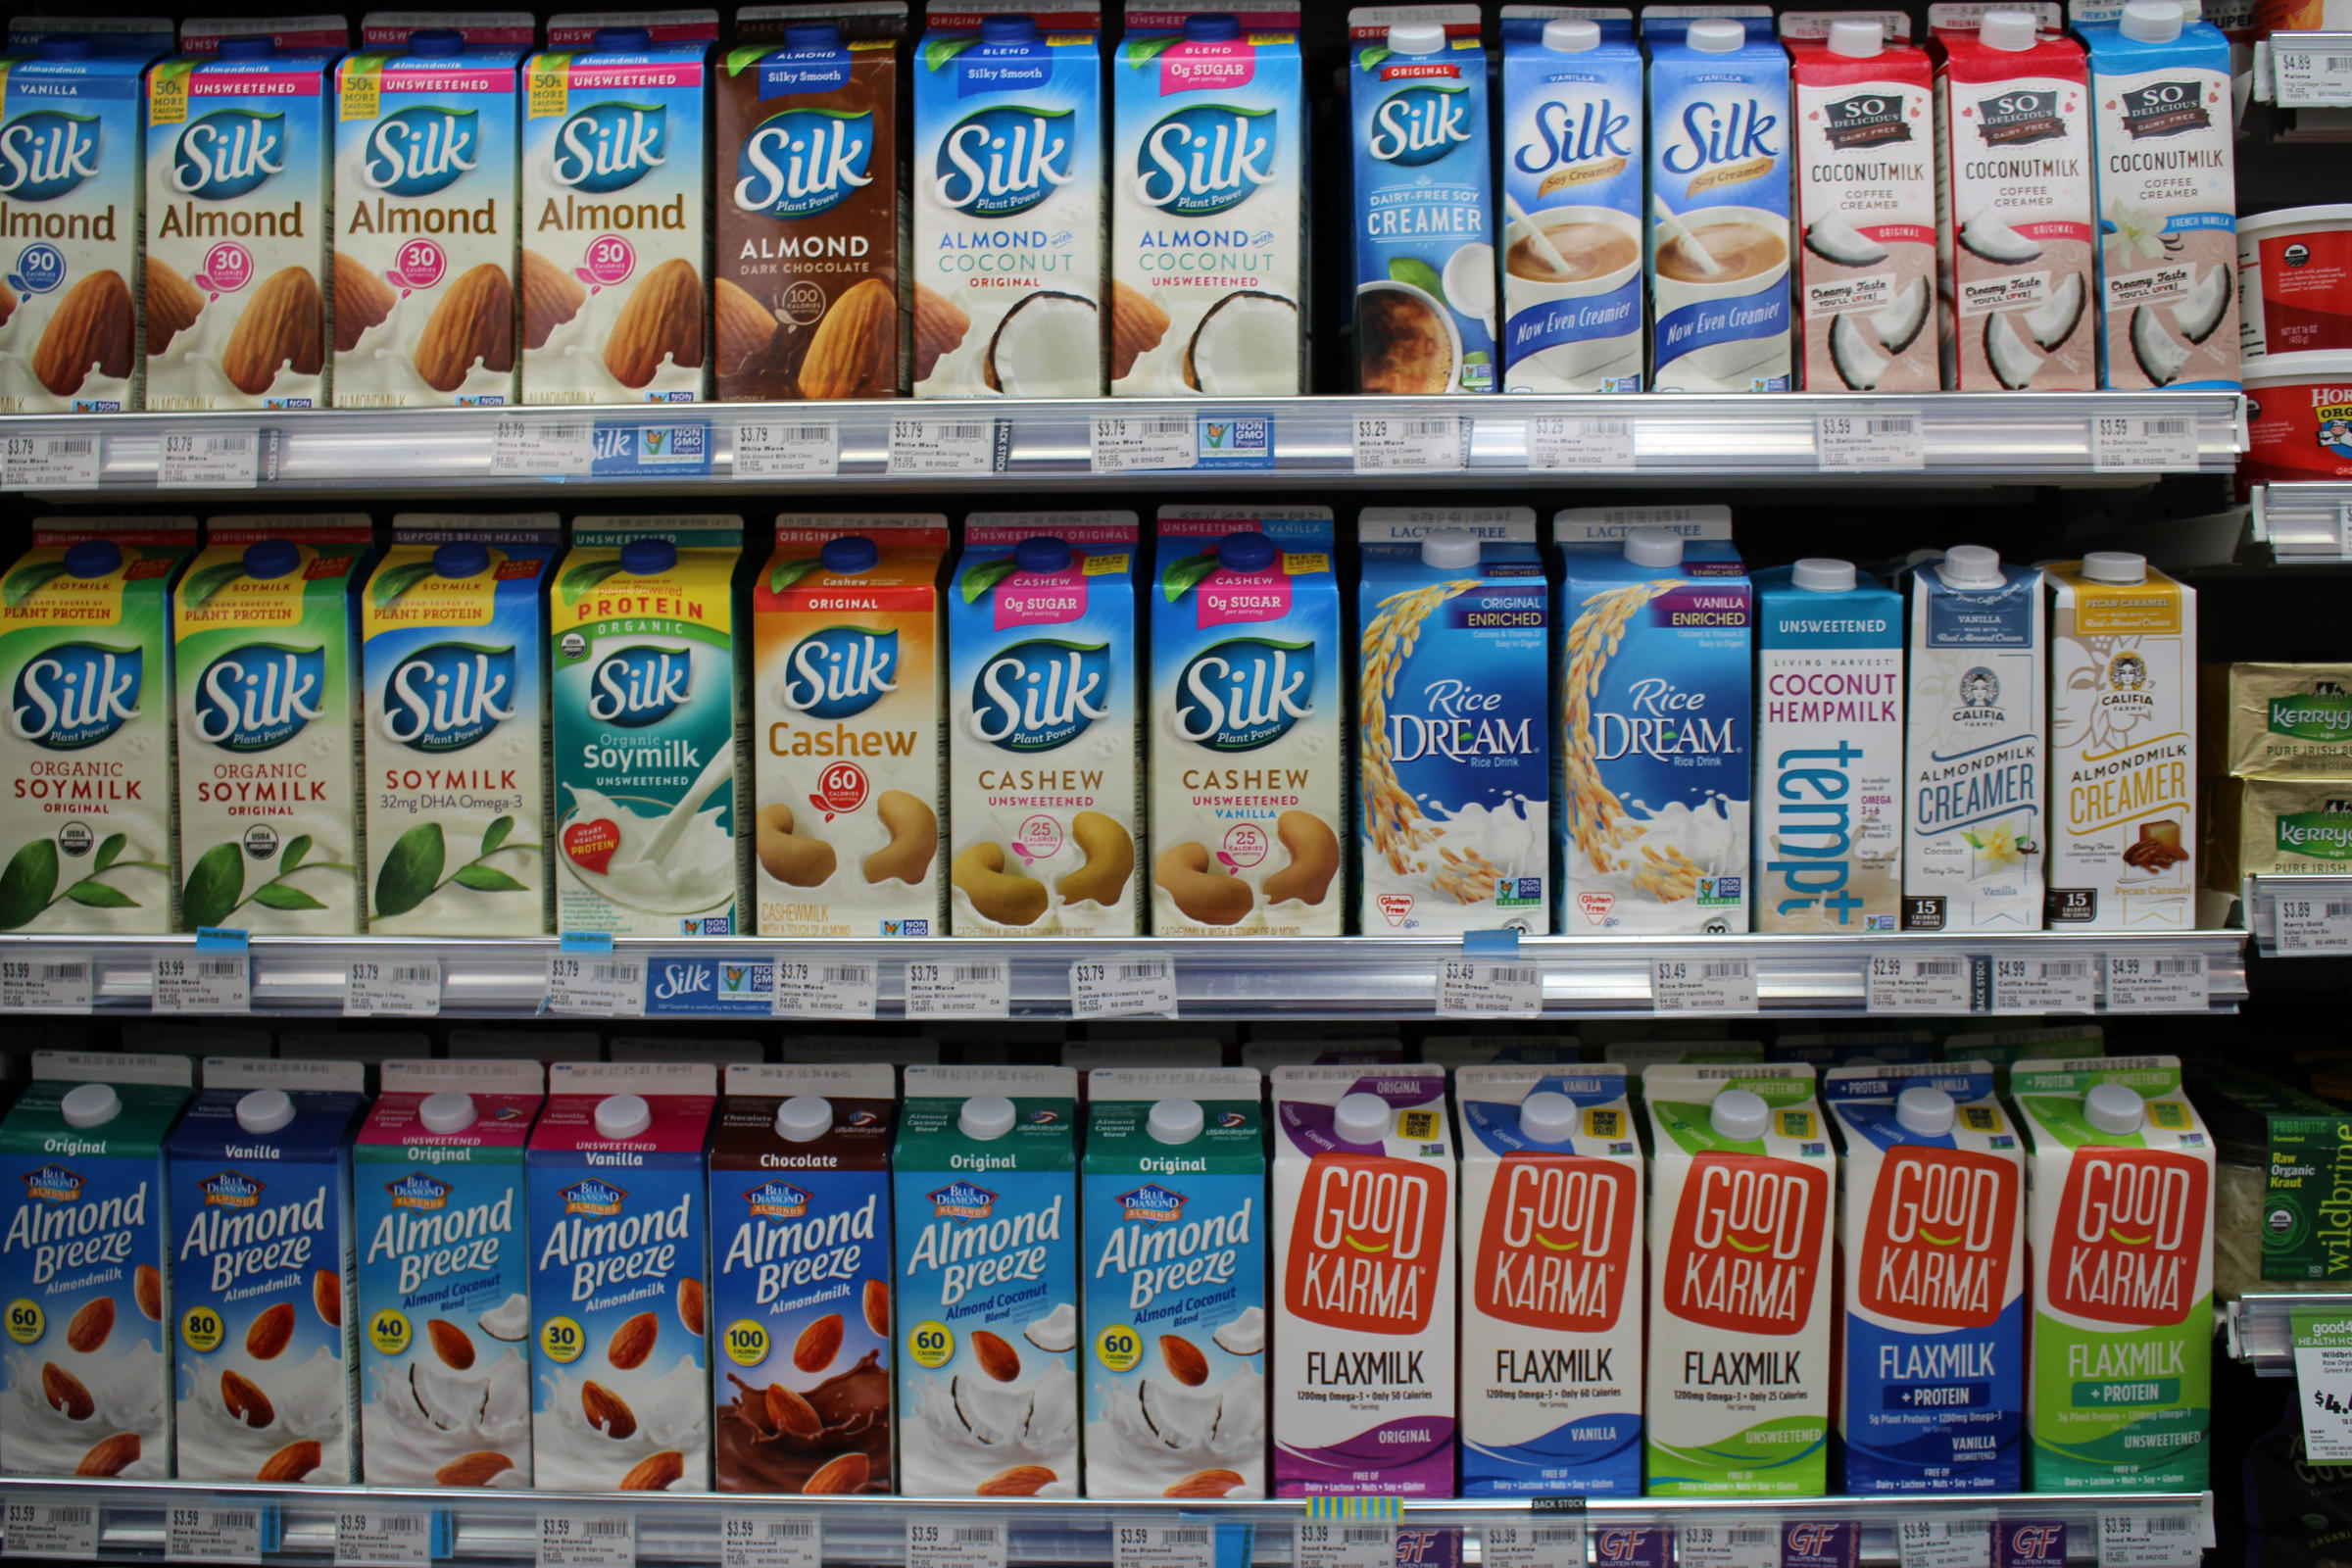 milk and dairy industry Daily news on dairy industry and dairy equipment free access to news on milk processing, dairy food, milk packaging and dairy ingredients.